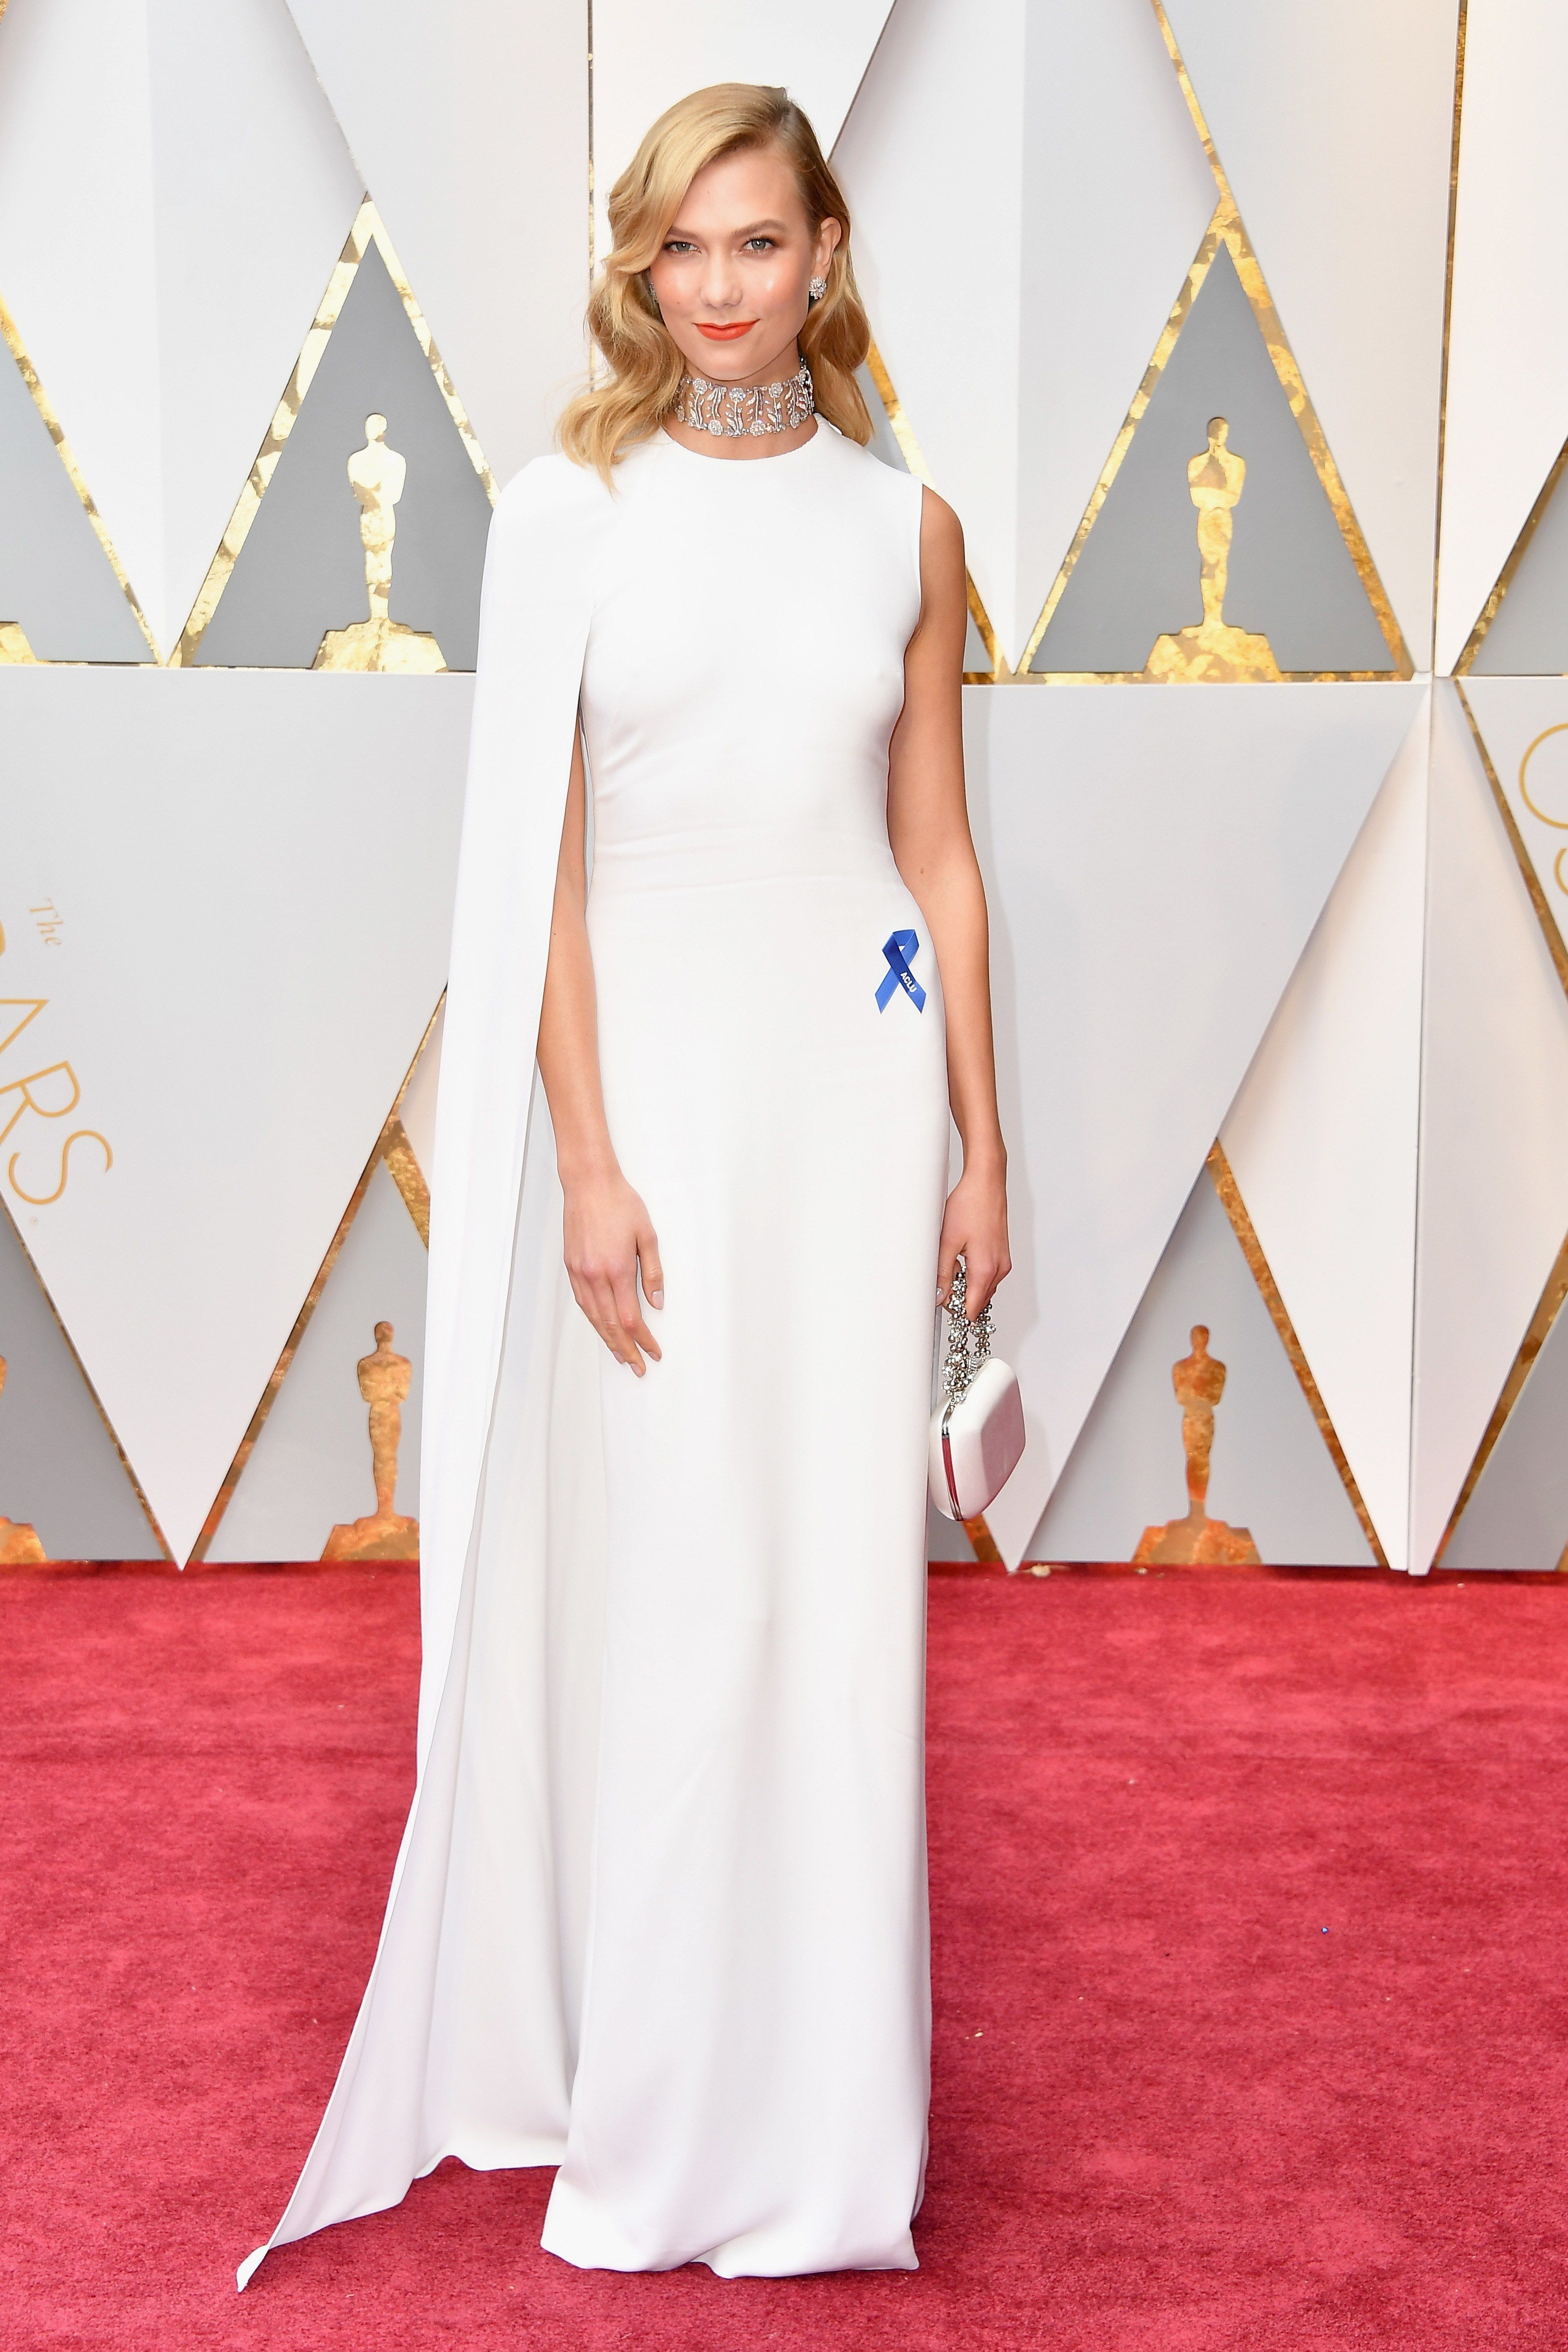 Oscars 2017 Fashion Live From The Red Carpet Celebrity Style Red Carpet Red Carpet Dresses 2017 Celebrity Dresses